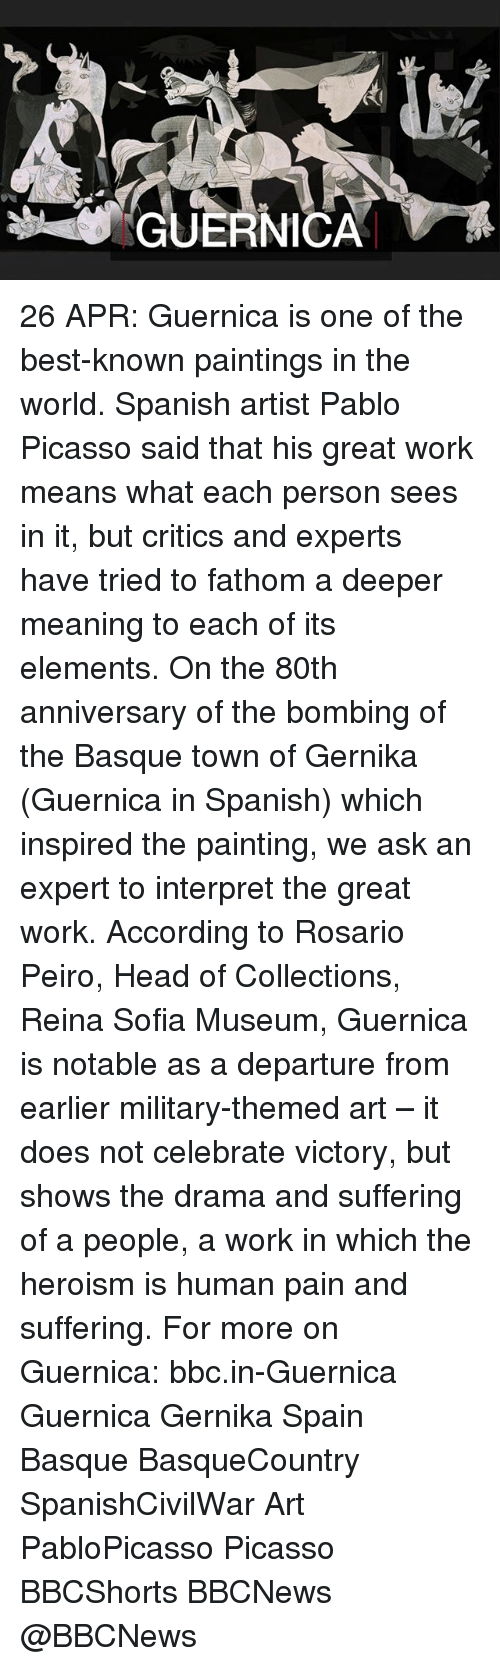 Pablo Picasso: GUERNICA 26 APR: Guernica is one of the best-known paintings in the world. Spanish artist Pablo Picasso said that his great work means what each person sees in it, but critics and experts have tried to fathom a deeper meaning to each of its elements. On the 80th anniversary of the bombing of the Basque town of Gernika (Guernica in Spanish) which inspired the painting, we ask an expert to interpret the great work. According to Rosario Peiro, Head of Collections, Reina Sofia Museum, Guernica is notable as a departure from earlier military-themed art – it does not celebrate victory, but shows the drama and suffering of a people, a work in which the heroism is human pain and suffering. For more on Guernica: bbc.in-Guernica Guernica Gernika Spain Basque BasqueCountry SpanishCivilWar Art PabloPicasso Picasso BBCShorts BBCNews @BBCNews